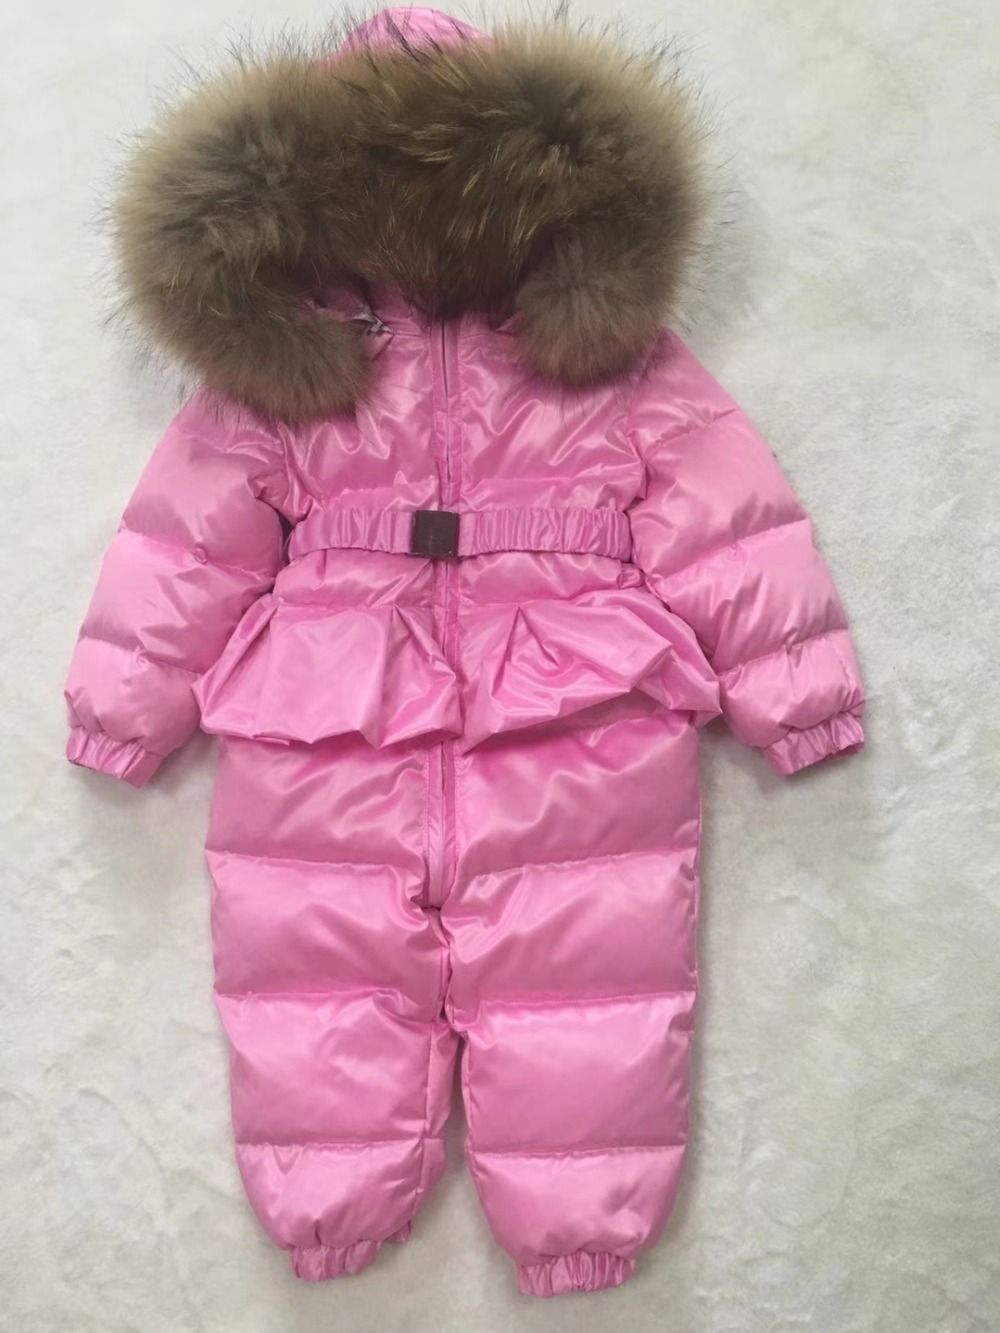 2018 for RU Winter White Duck Down Baby Rompers Baby Snowsuit Infant Girl Pink One-piece Outfit Children's Down Clothing winter baby boy girl white duck down jackets shoes set toddler tracksuit infant kids rompers baby clothing sets for christmas